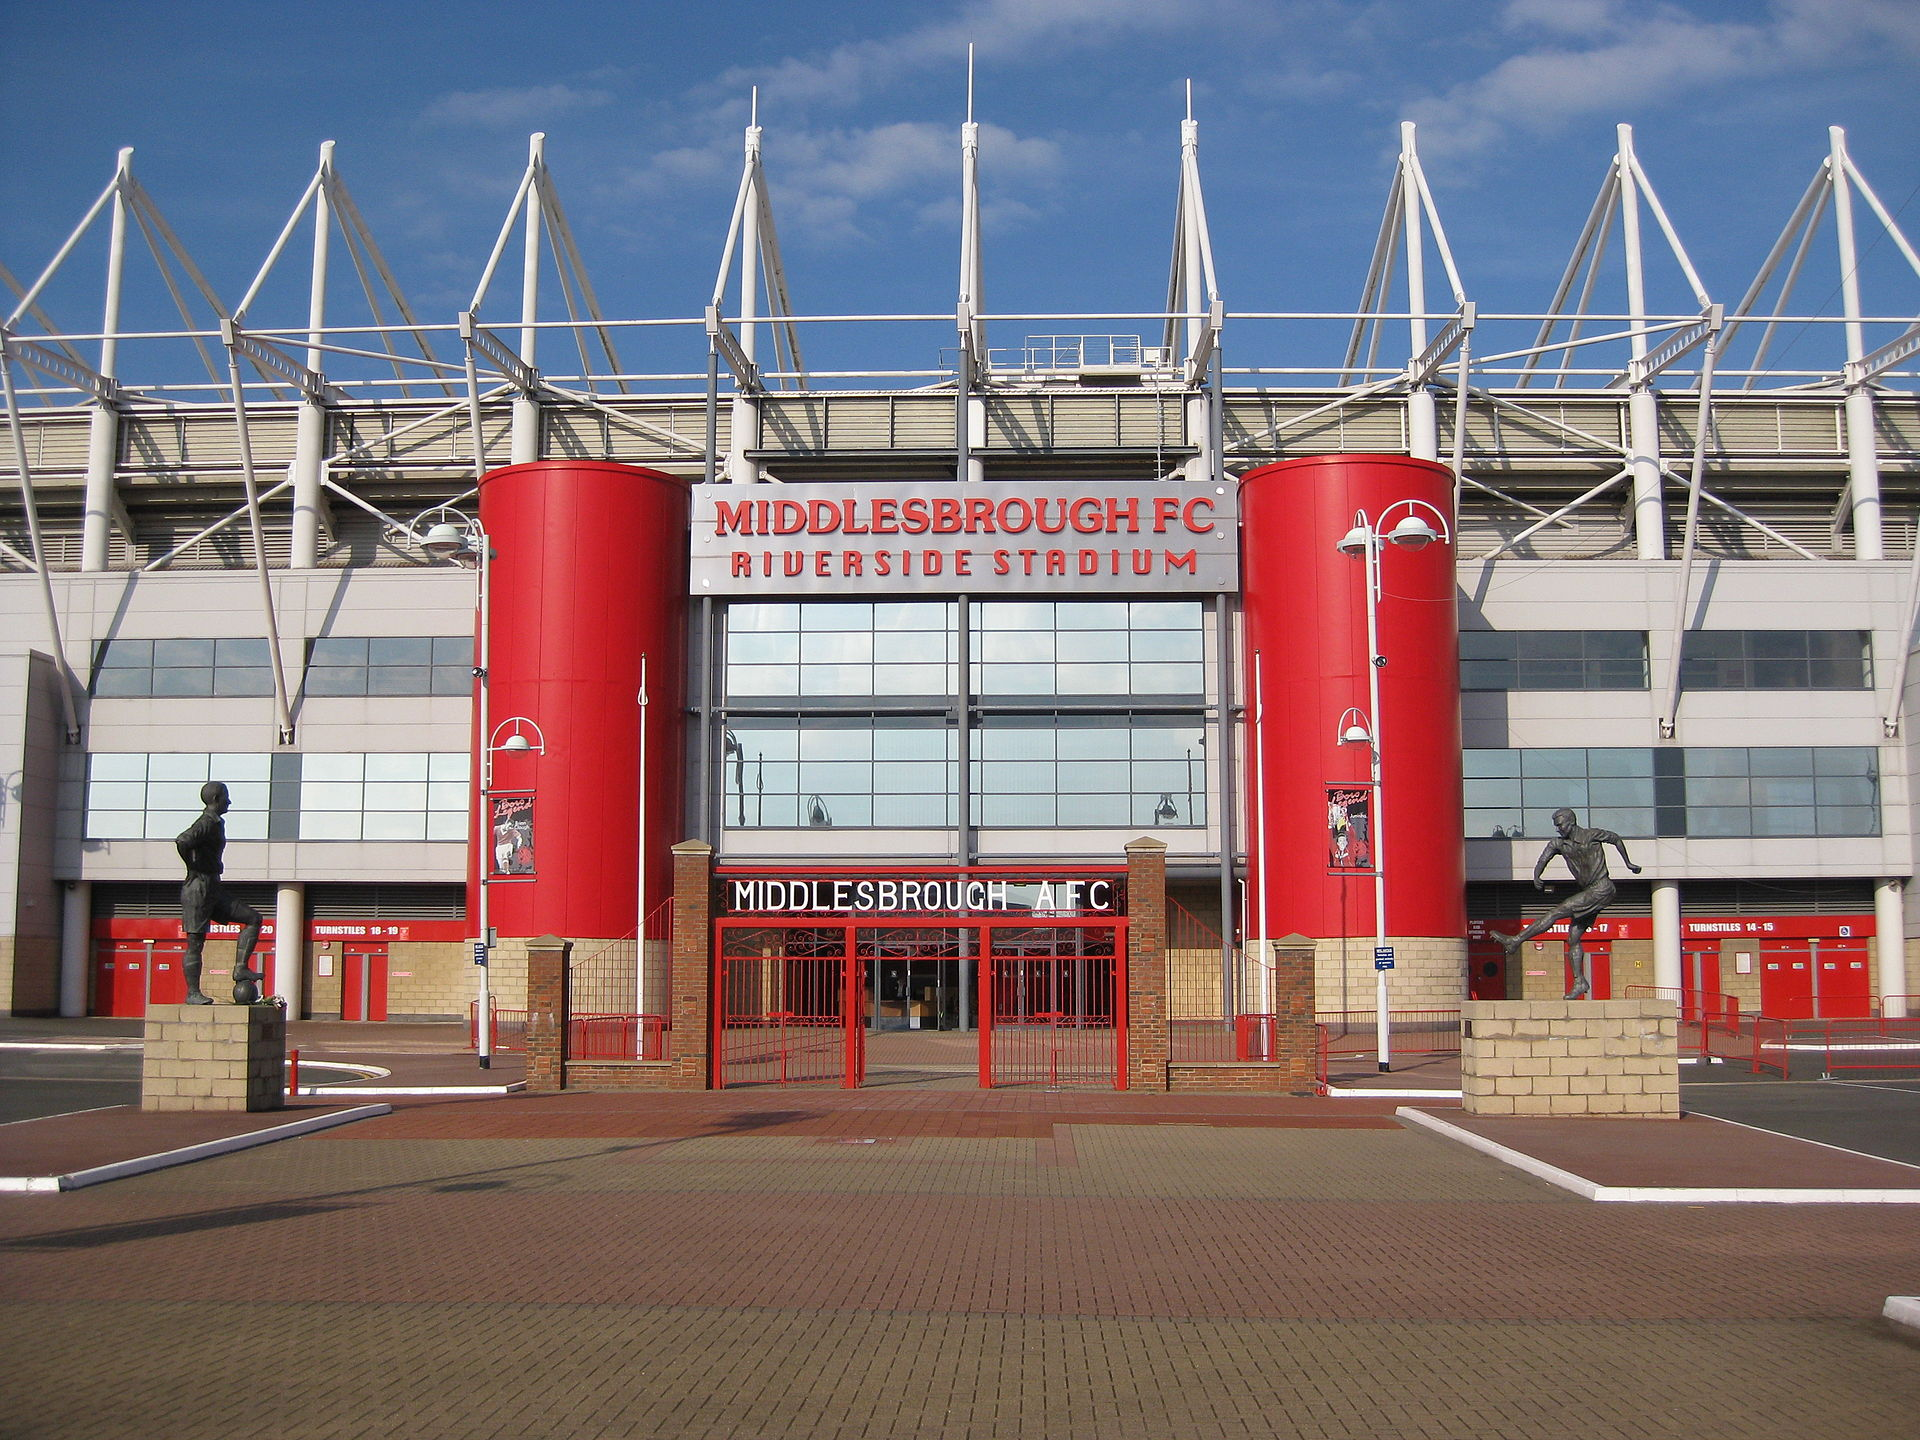 riverside stadium simple english wikipedia the free